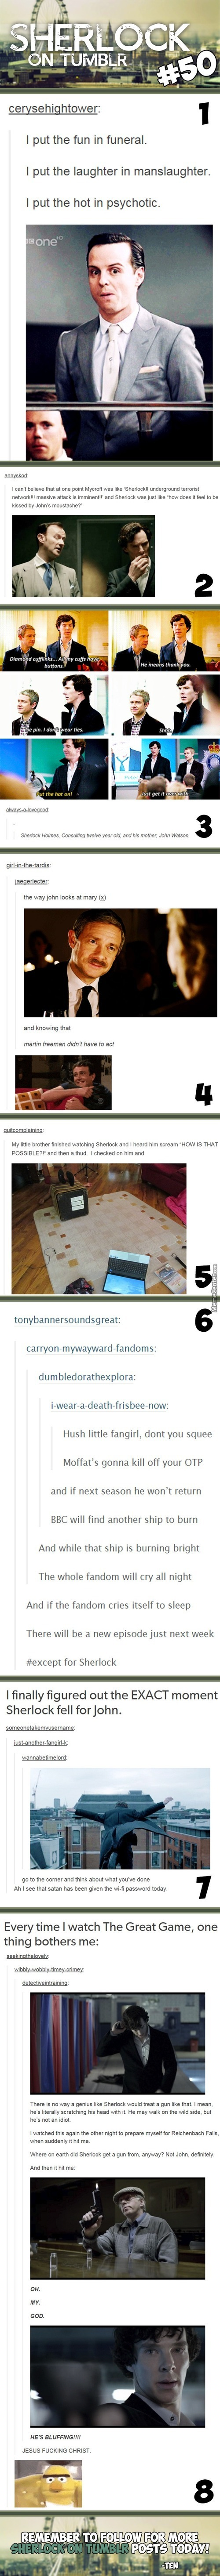 Sherlock On Tumblr #50